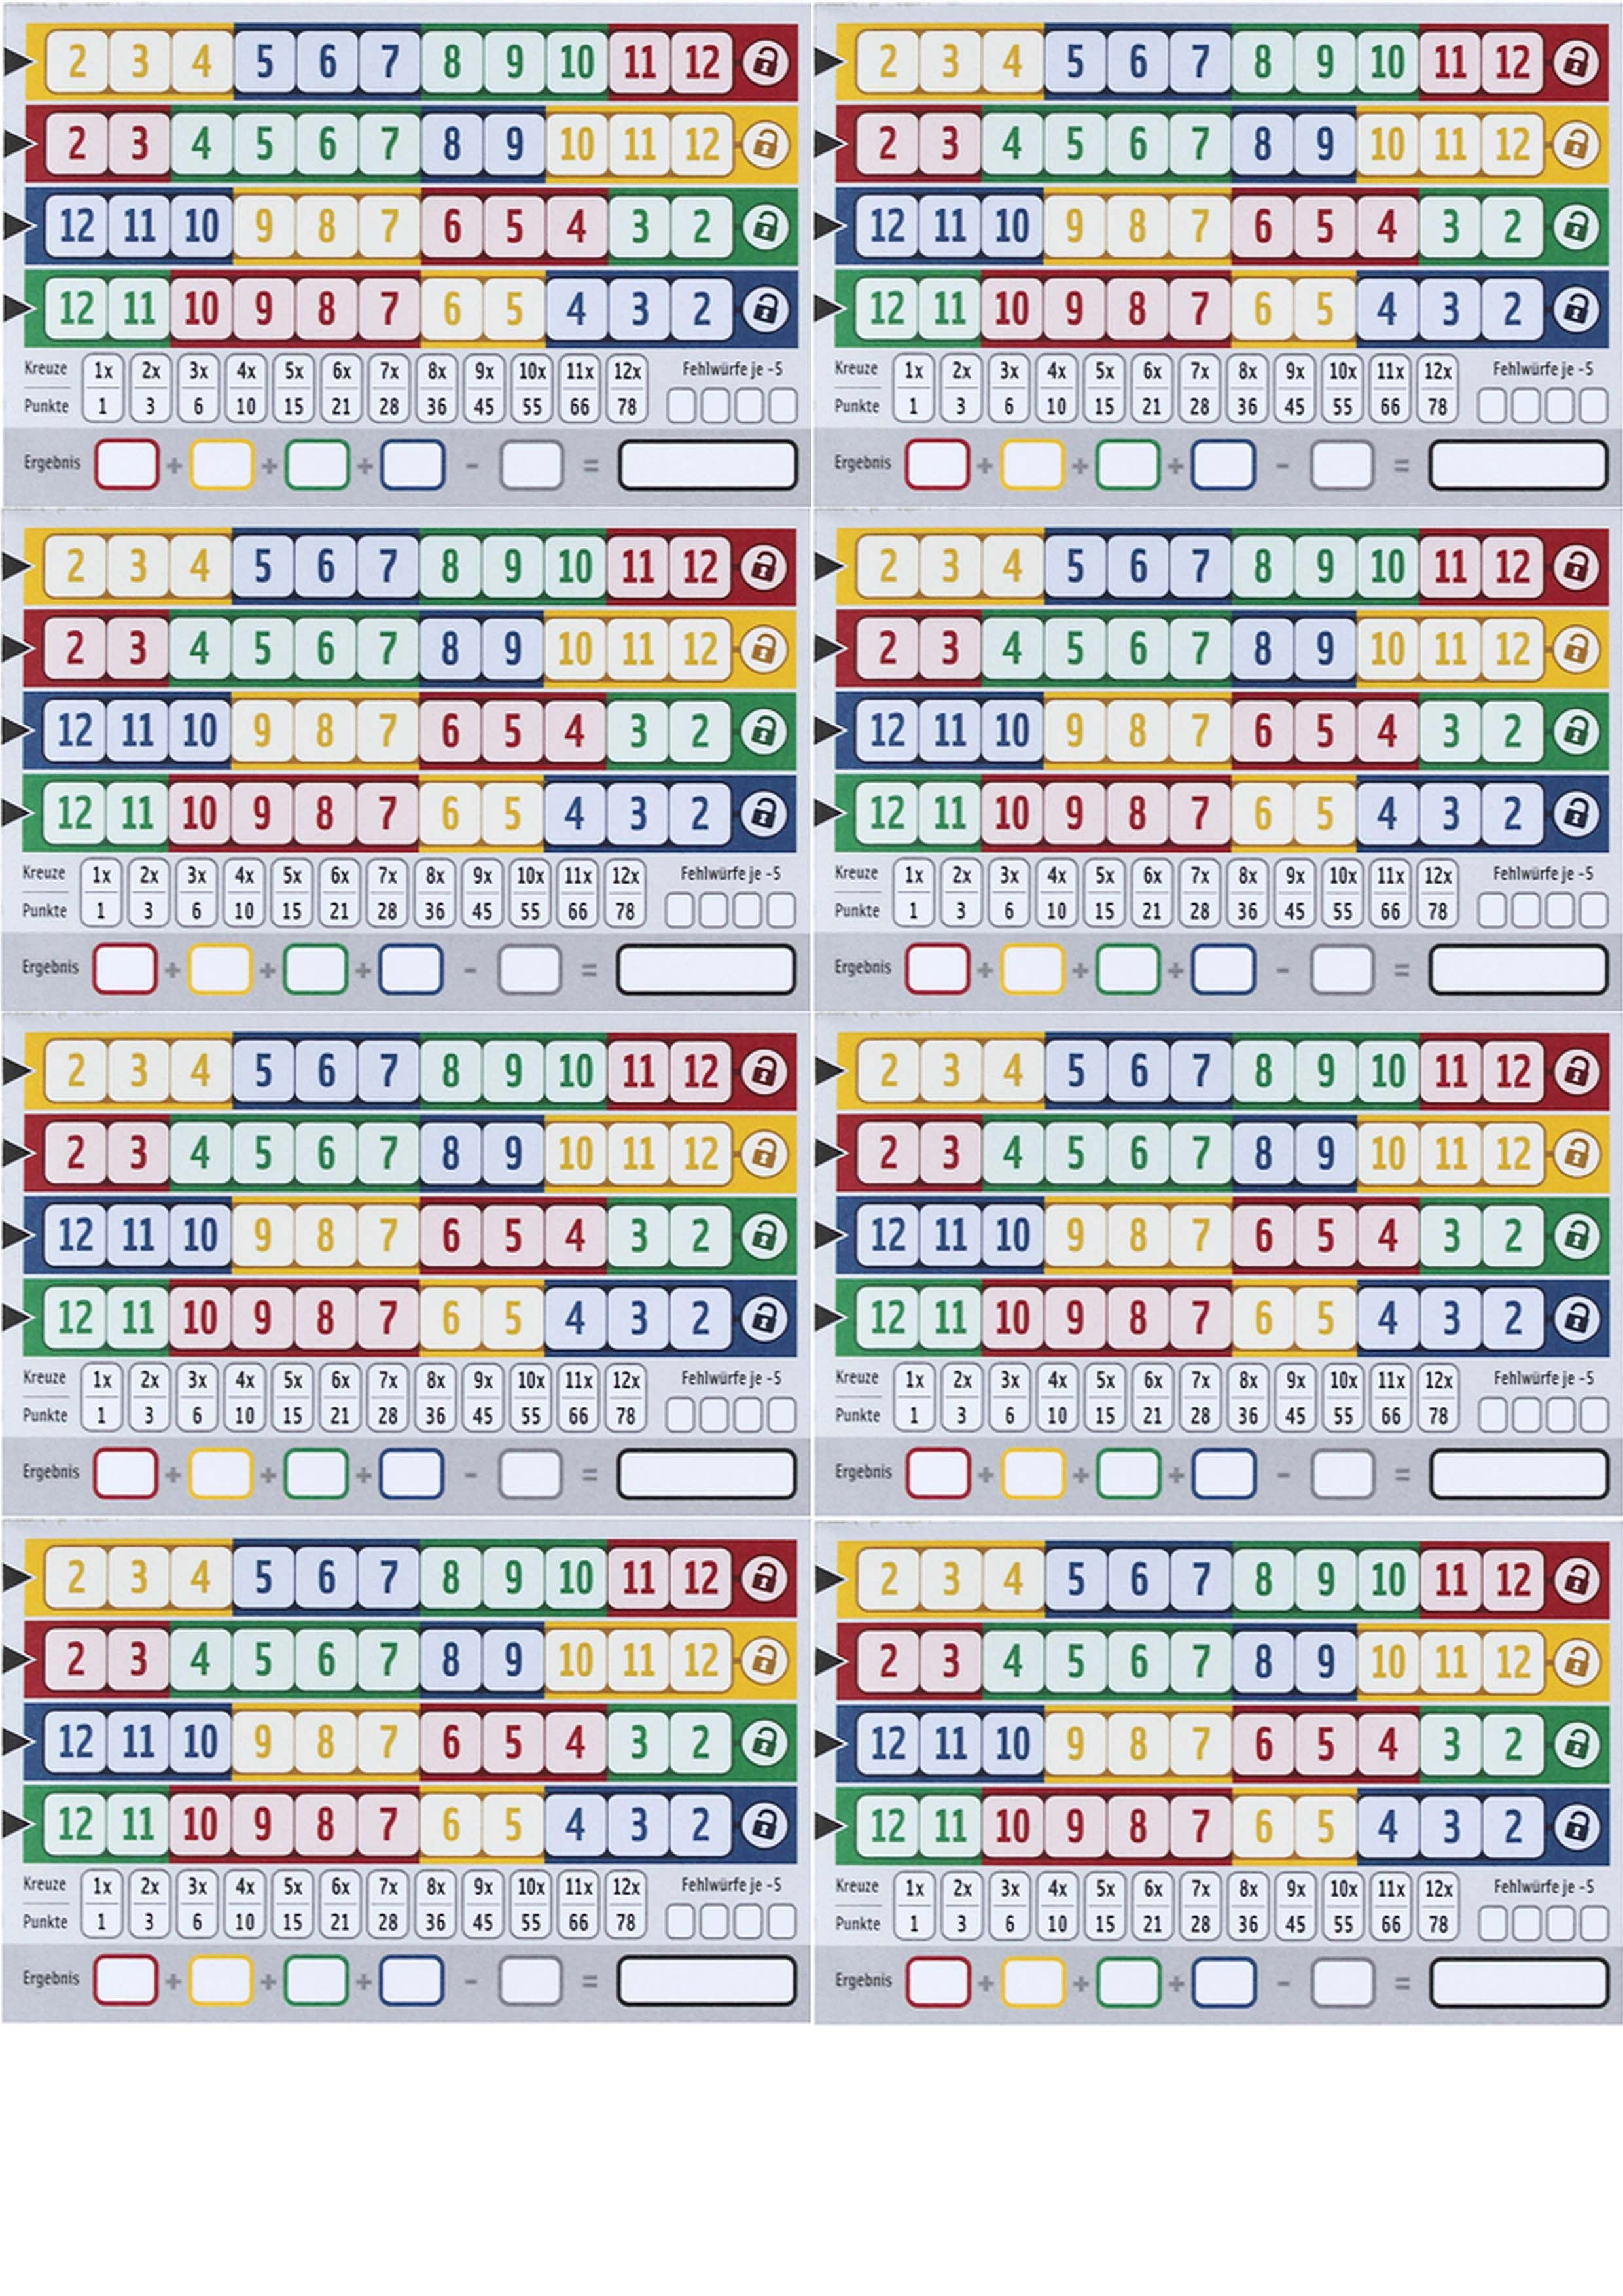 quixx score sheet printable Google Search in 2020 (With